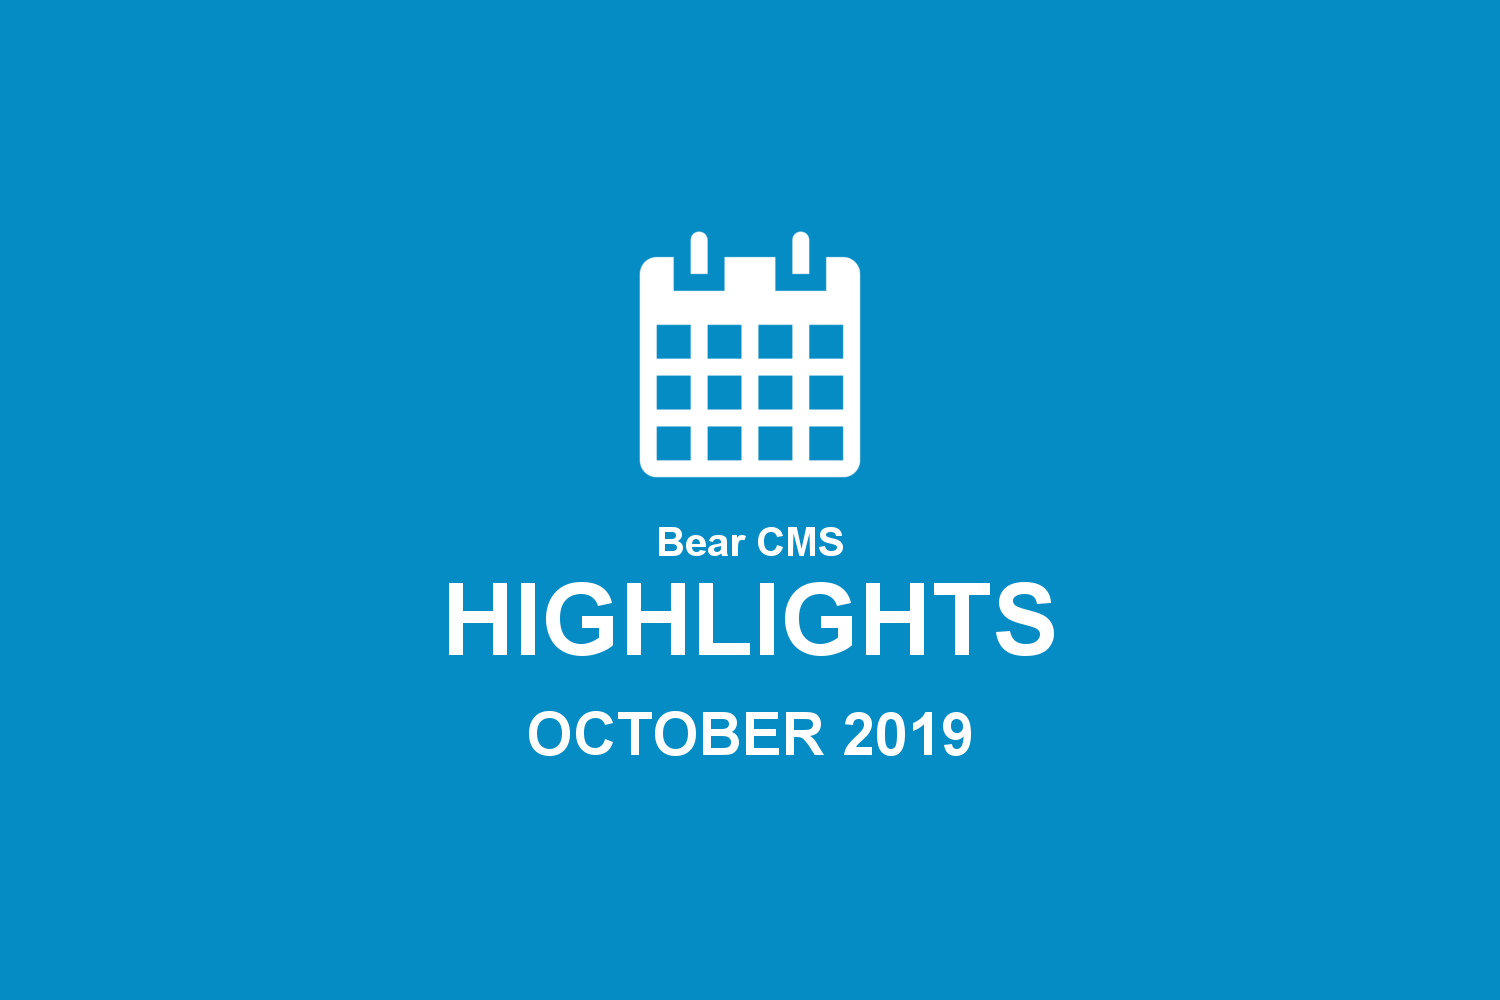 Bear CMS highlights (October 2019)